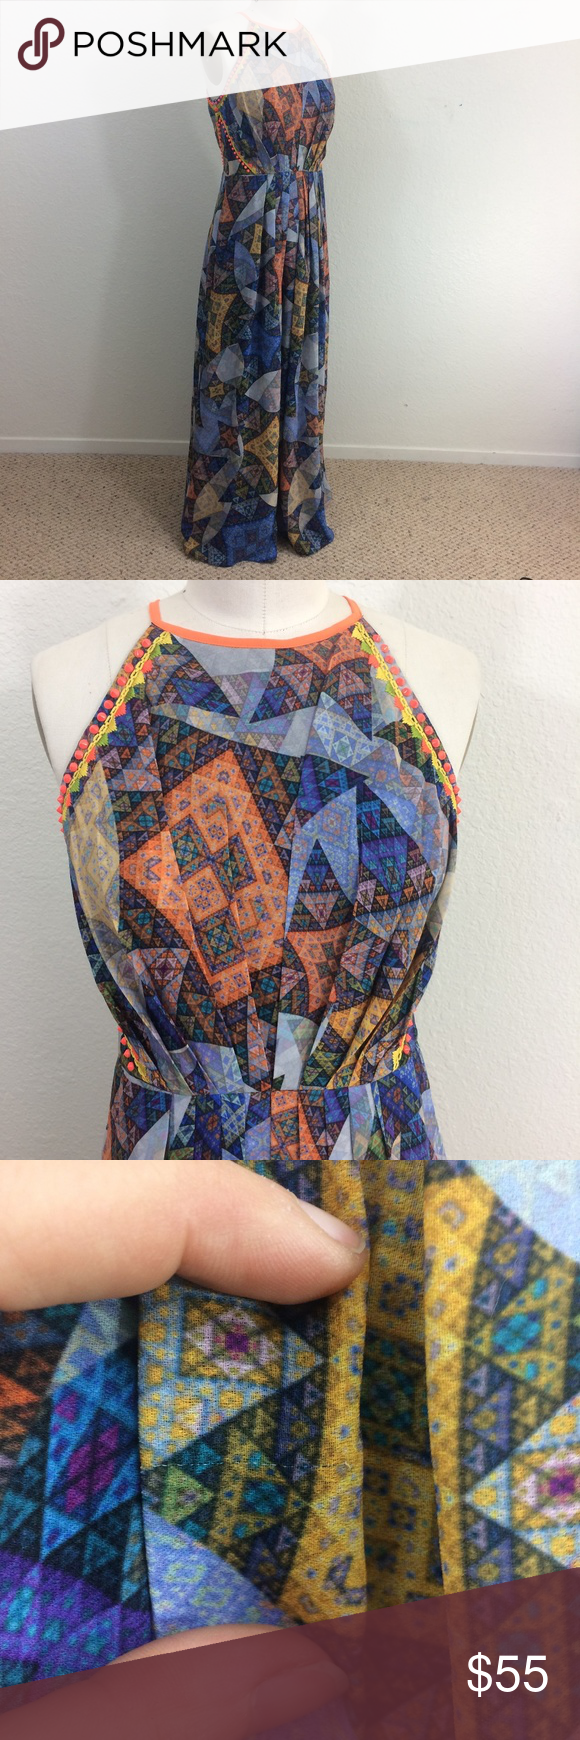 0e4a611198b6 Ranna Gill Anthropologie Condesa Maxi Dress Condition Item is in good  pre-owned condition.